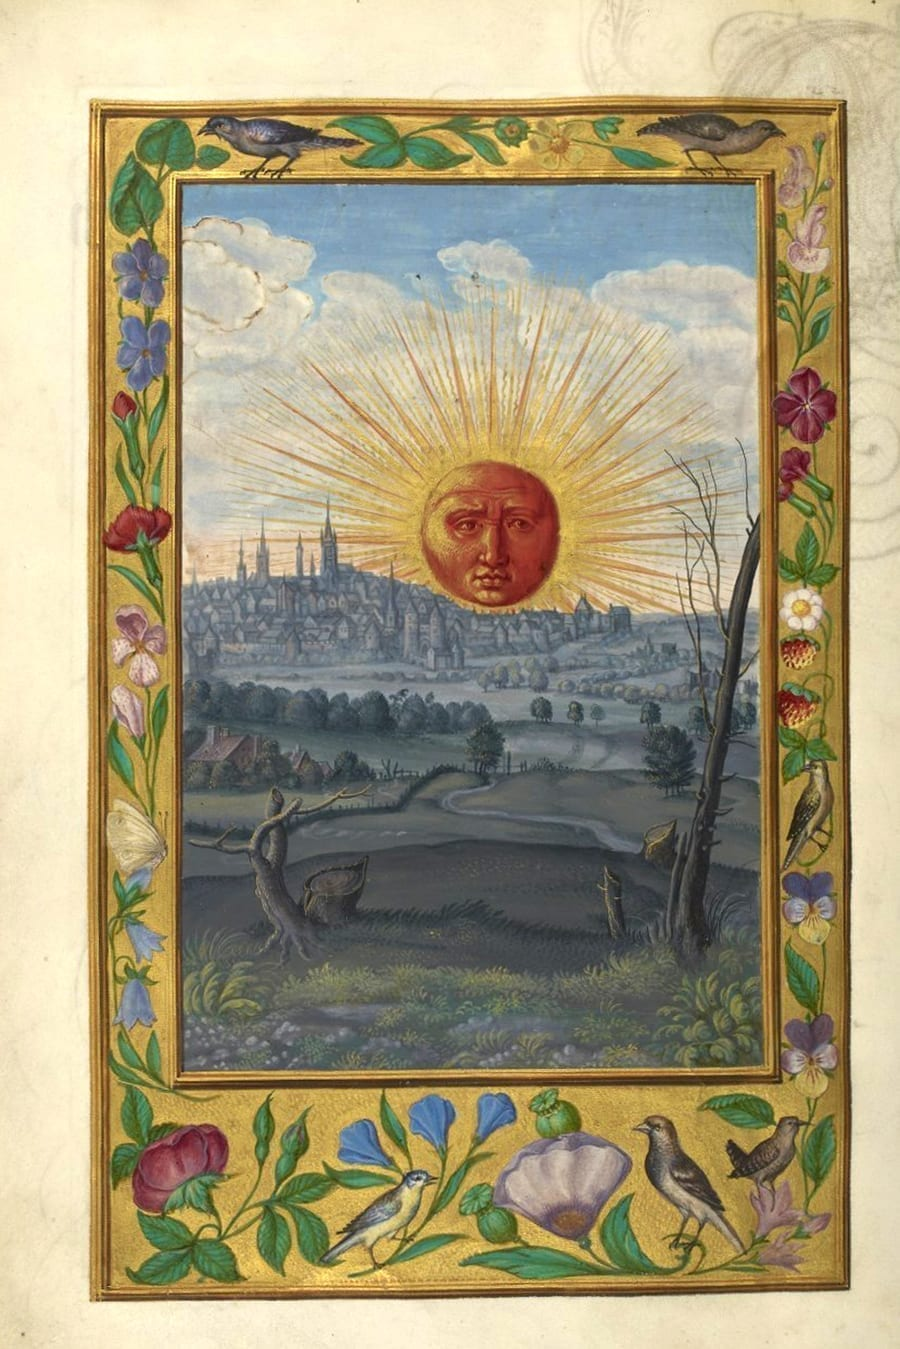 Illustration of the sun from the Alchemical manuscript Splendor Solis